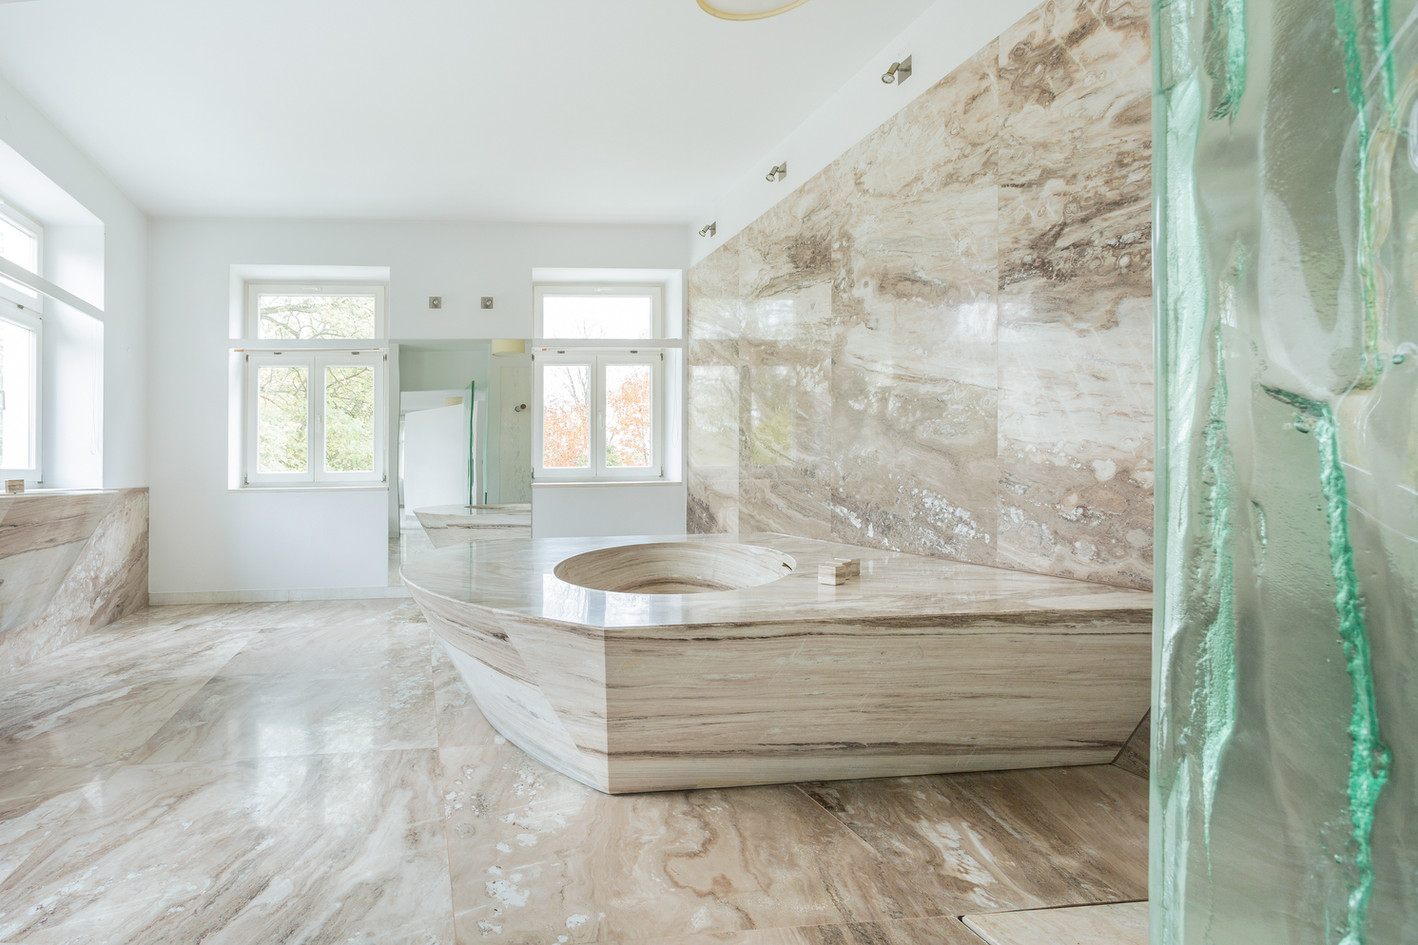 marble bathroom in expensive house